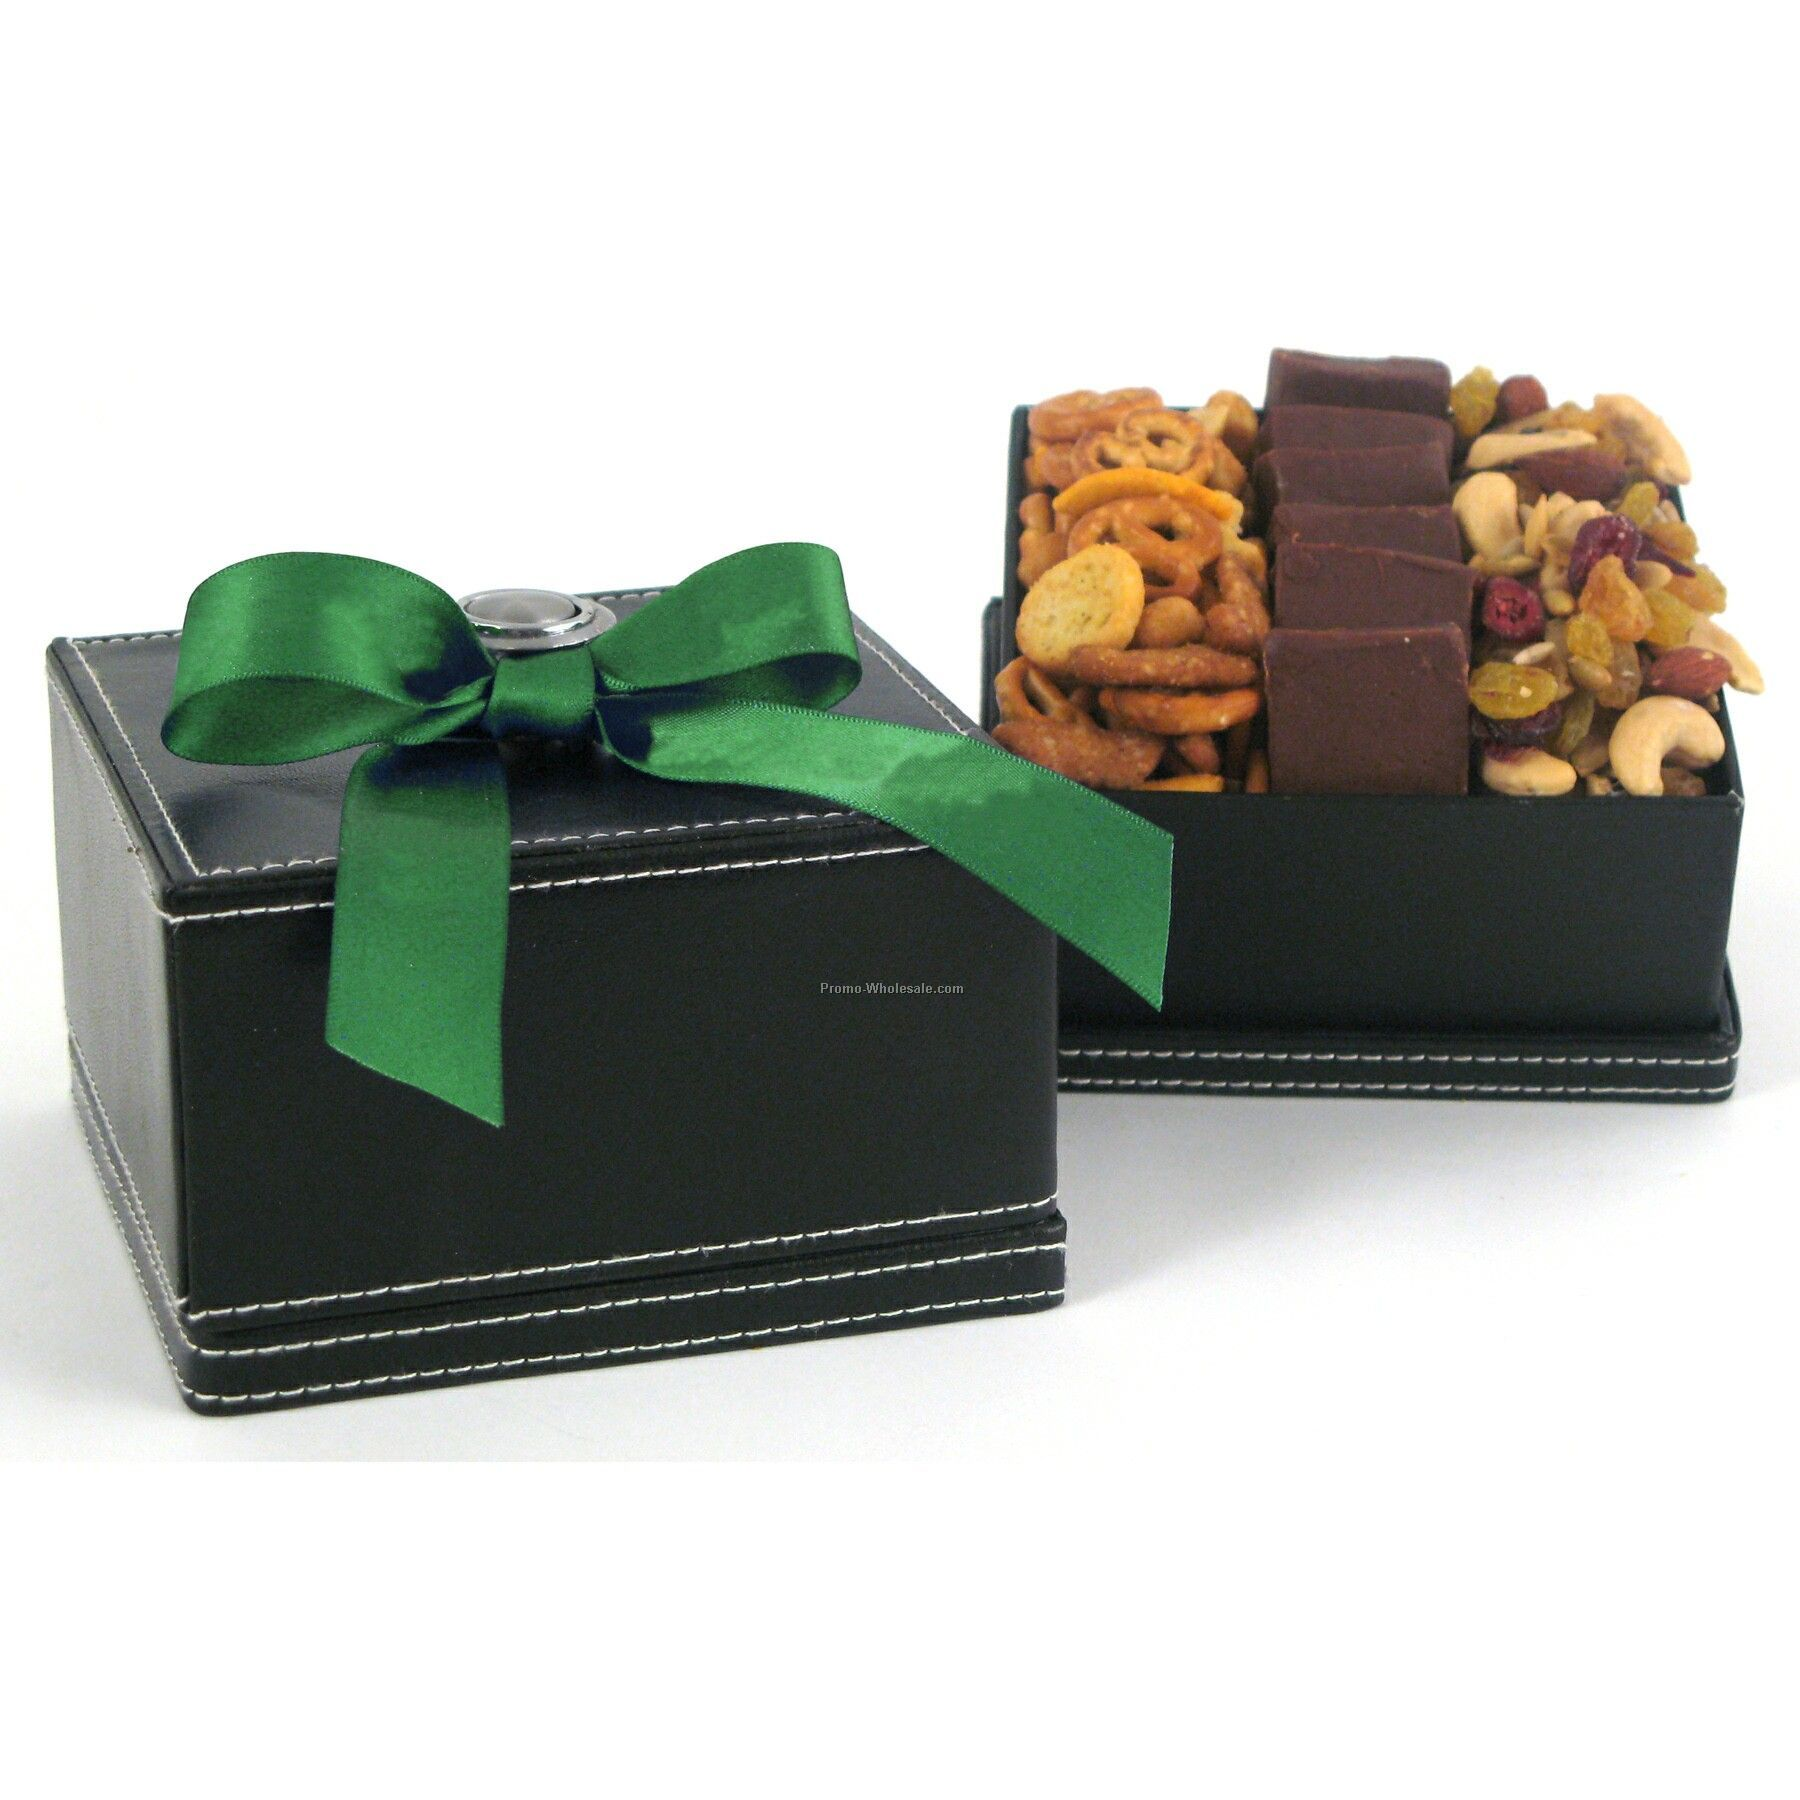 Executive Sweet & Savory Knob Box